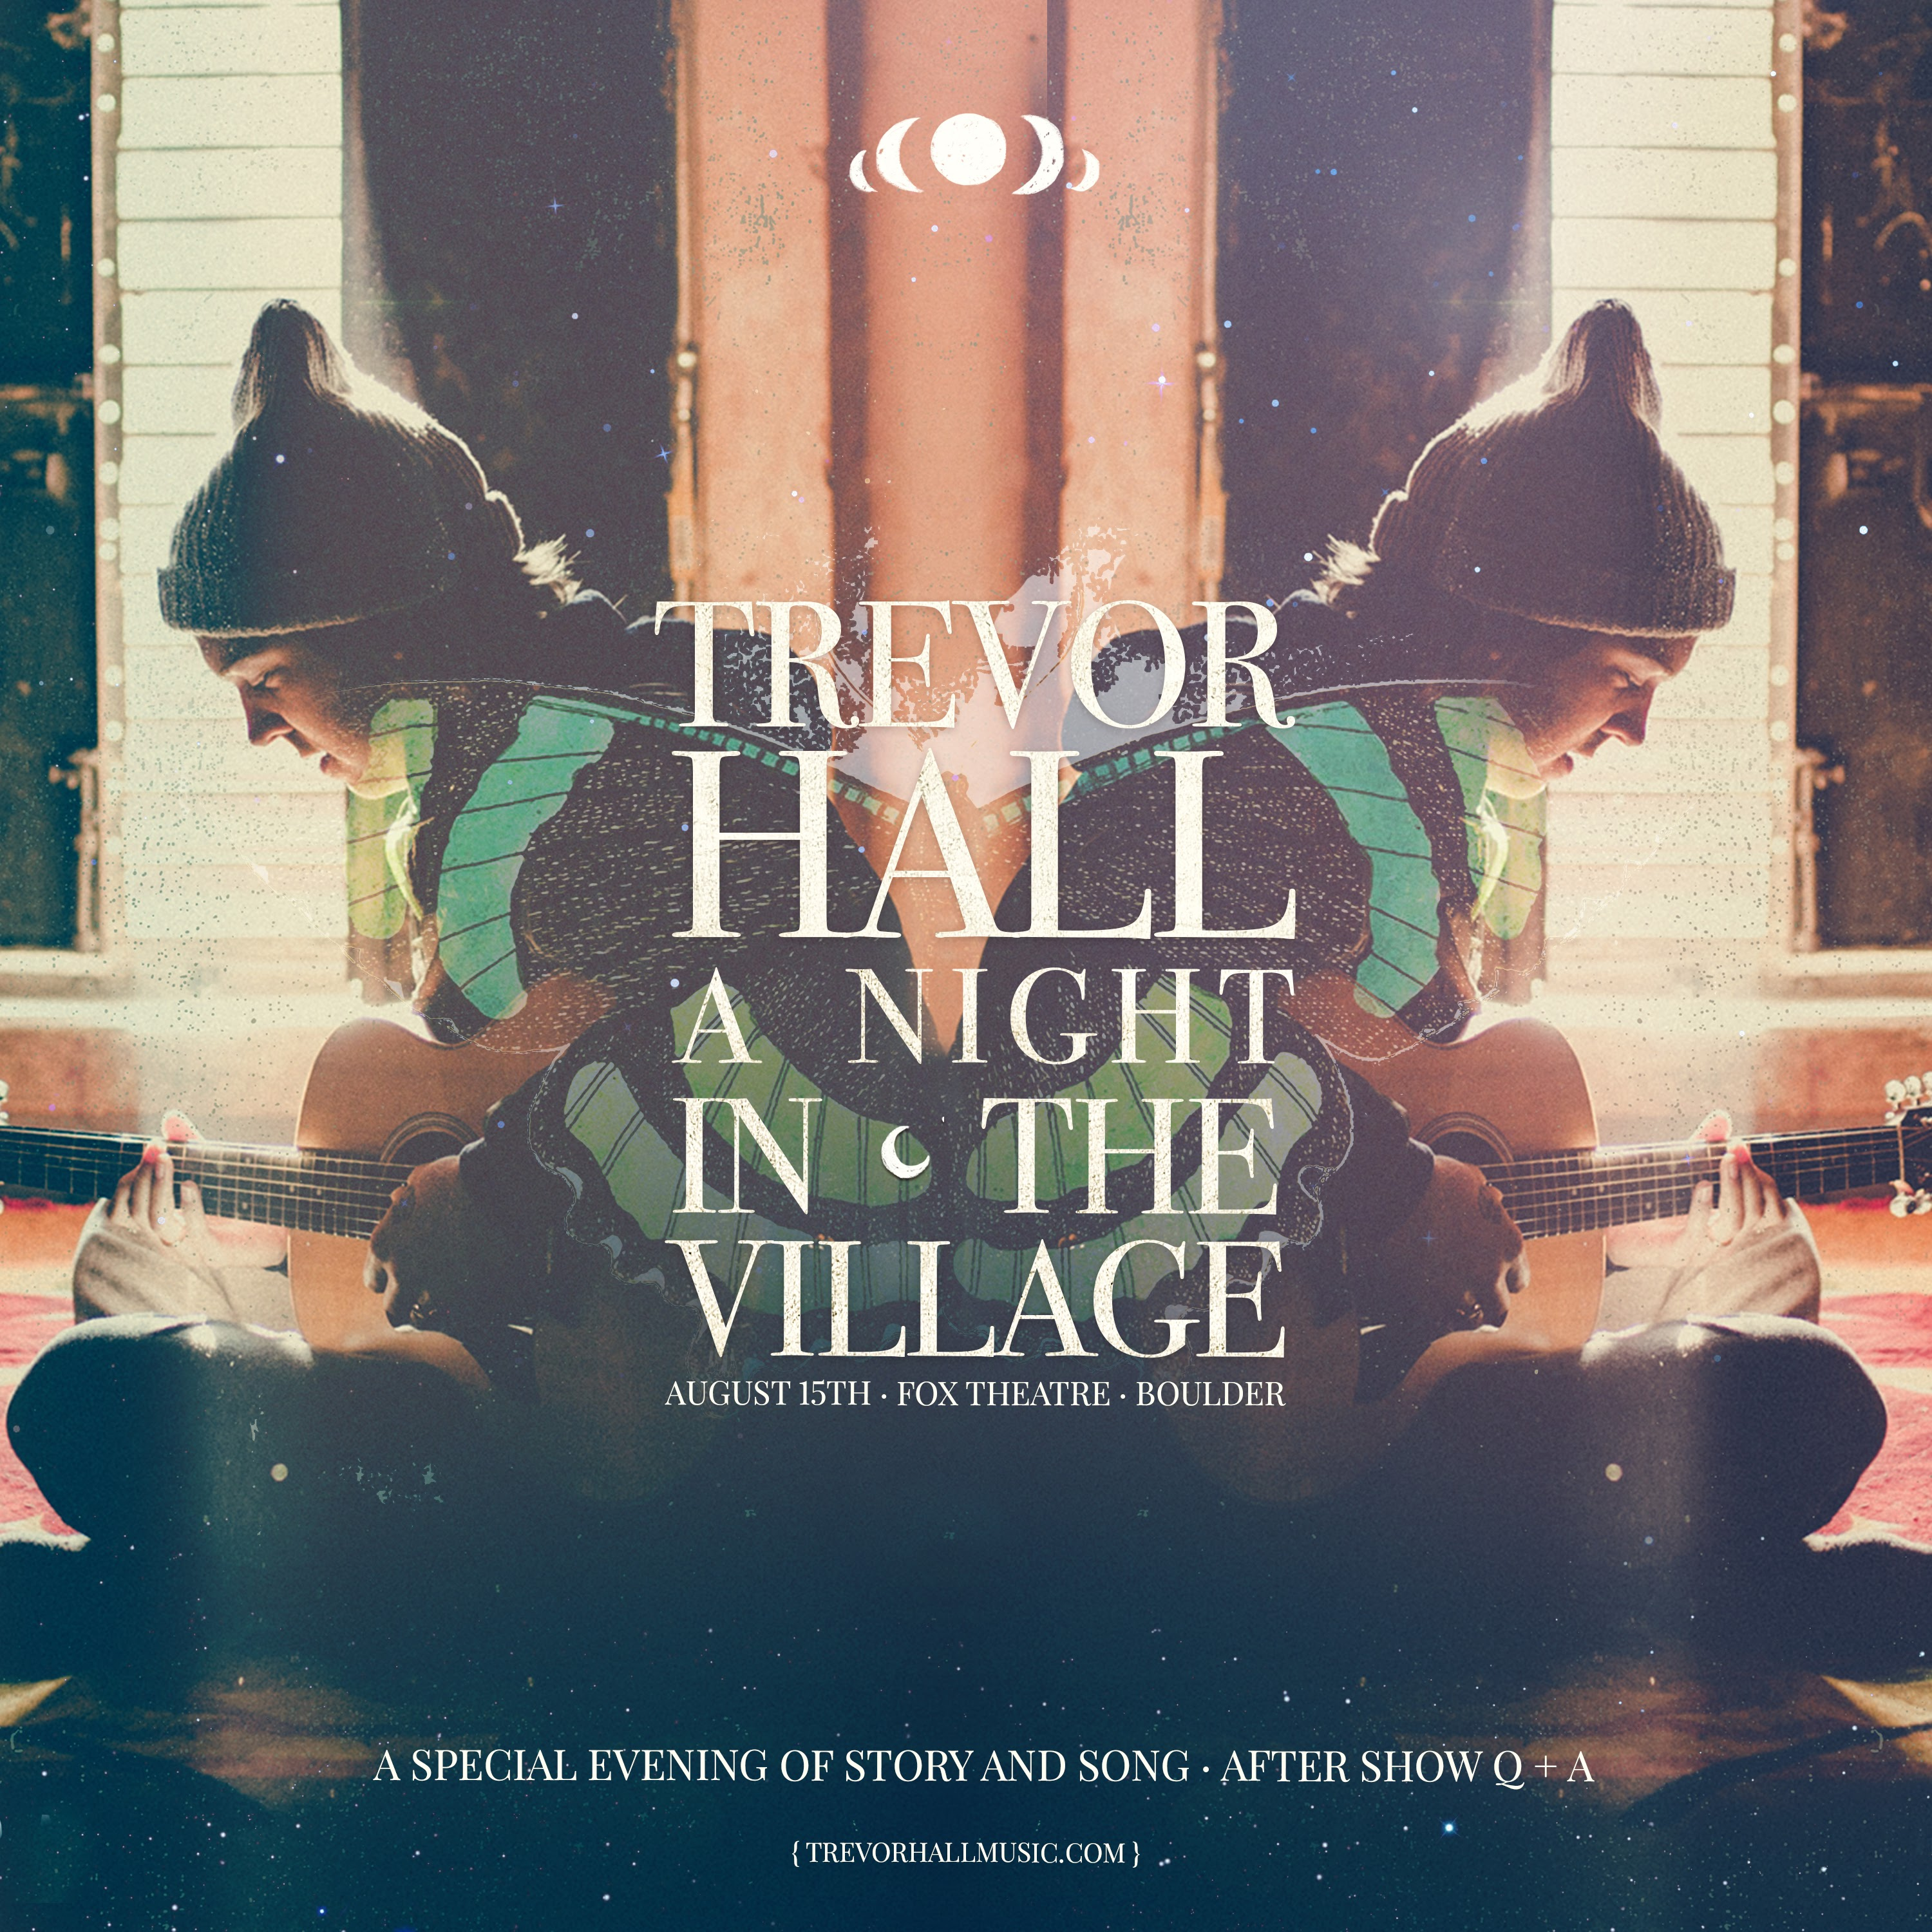 Trevor Hall - A Night in The Village Livestream from the Fox Theatre